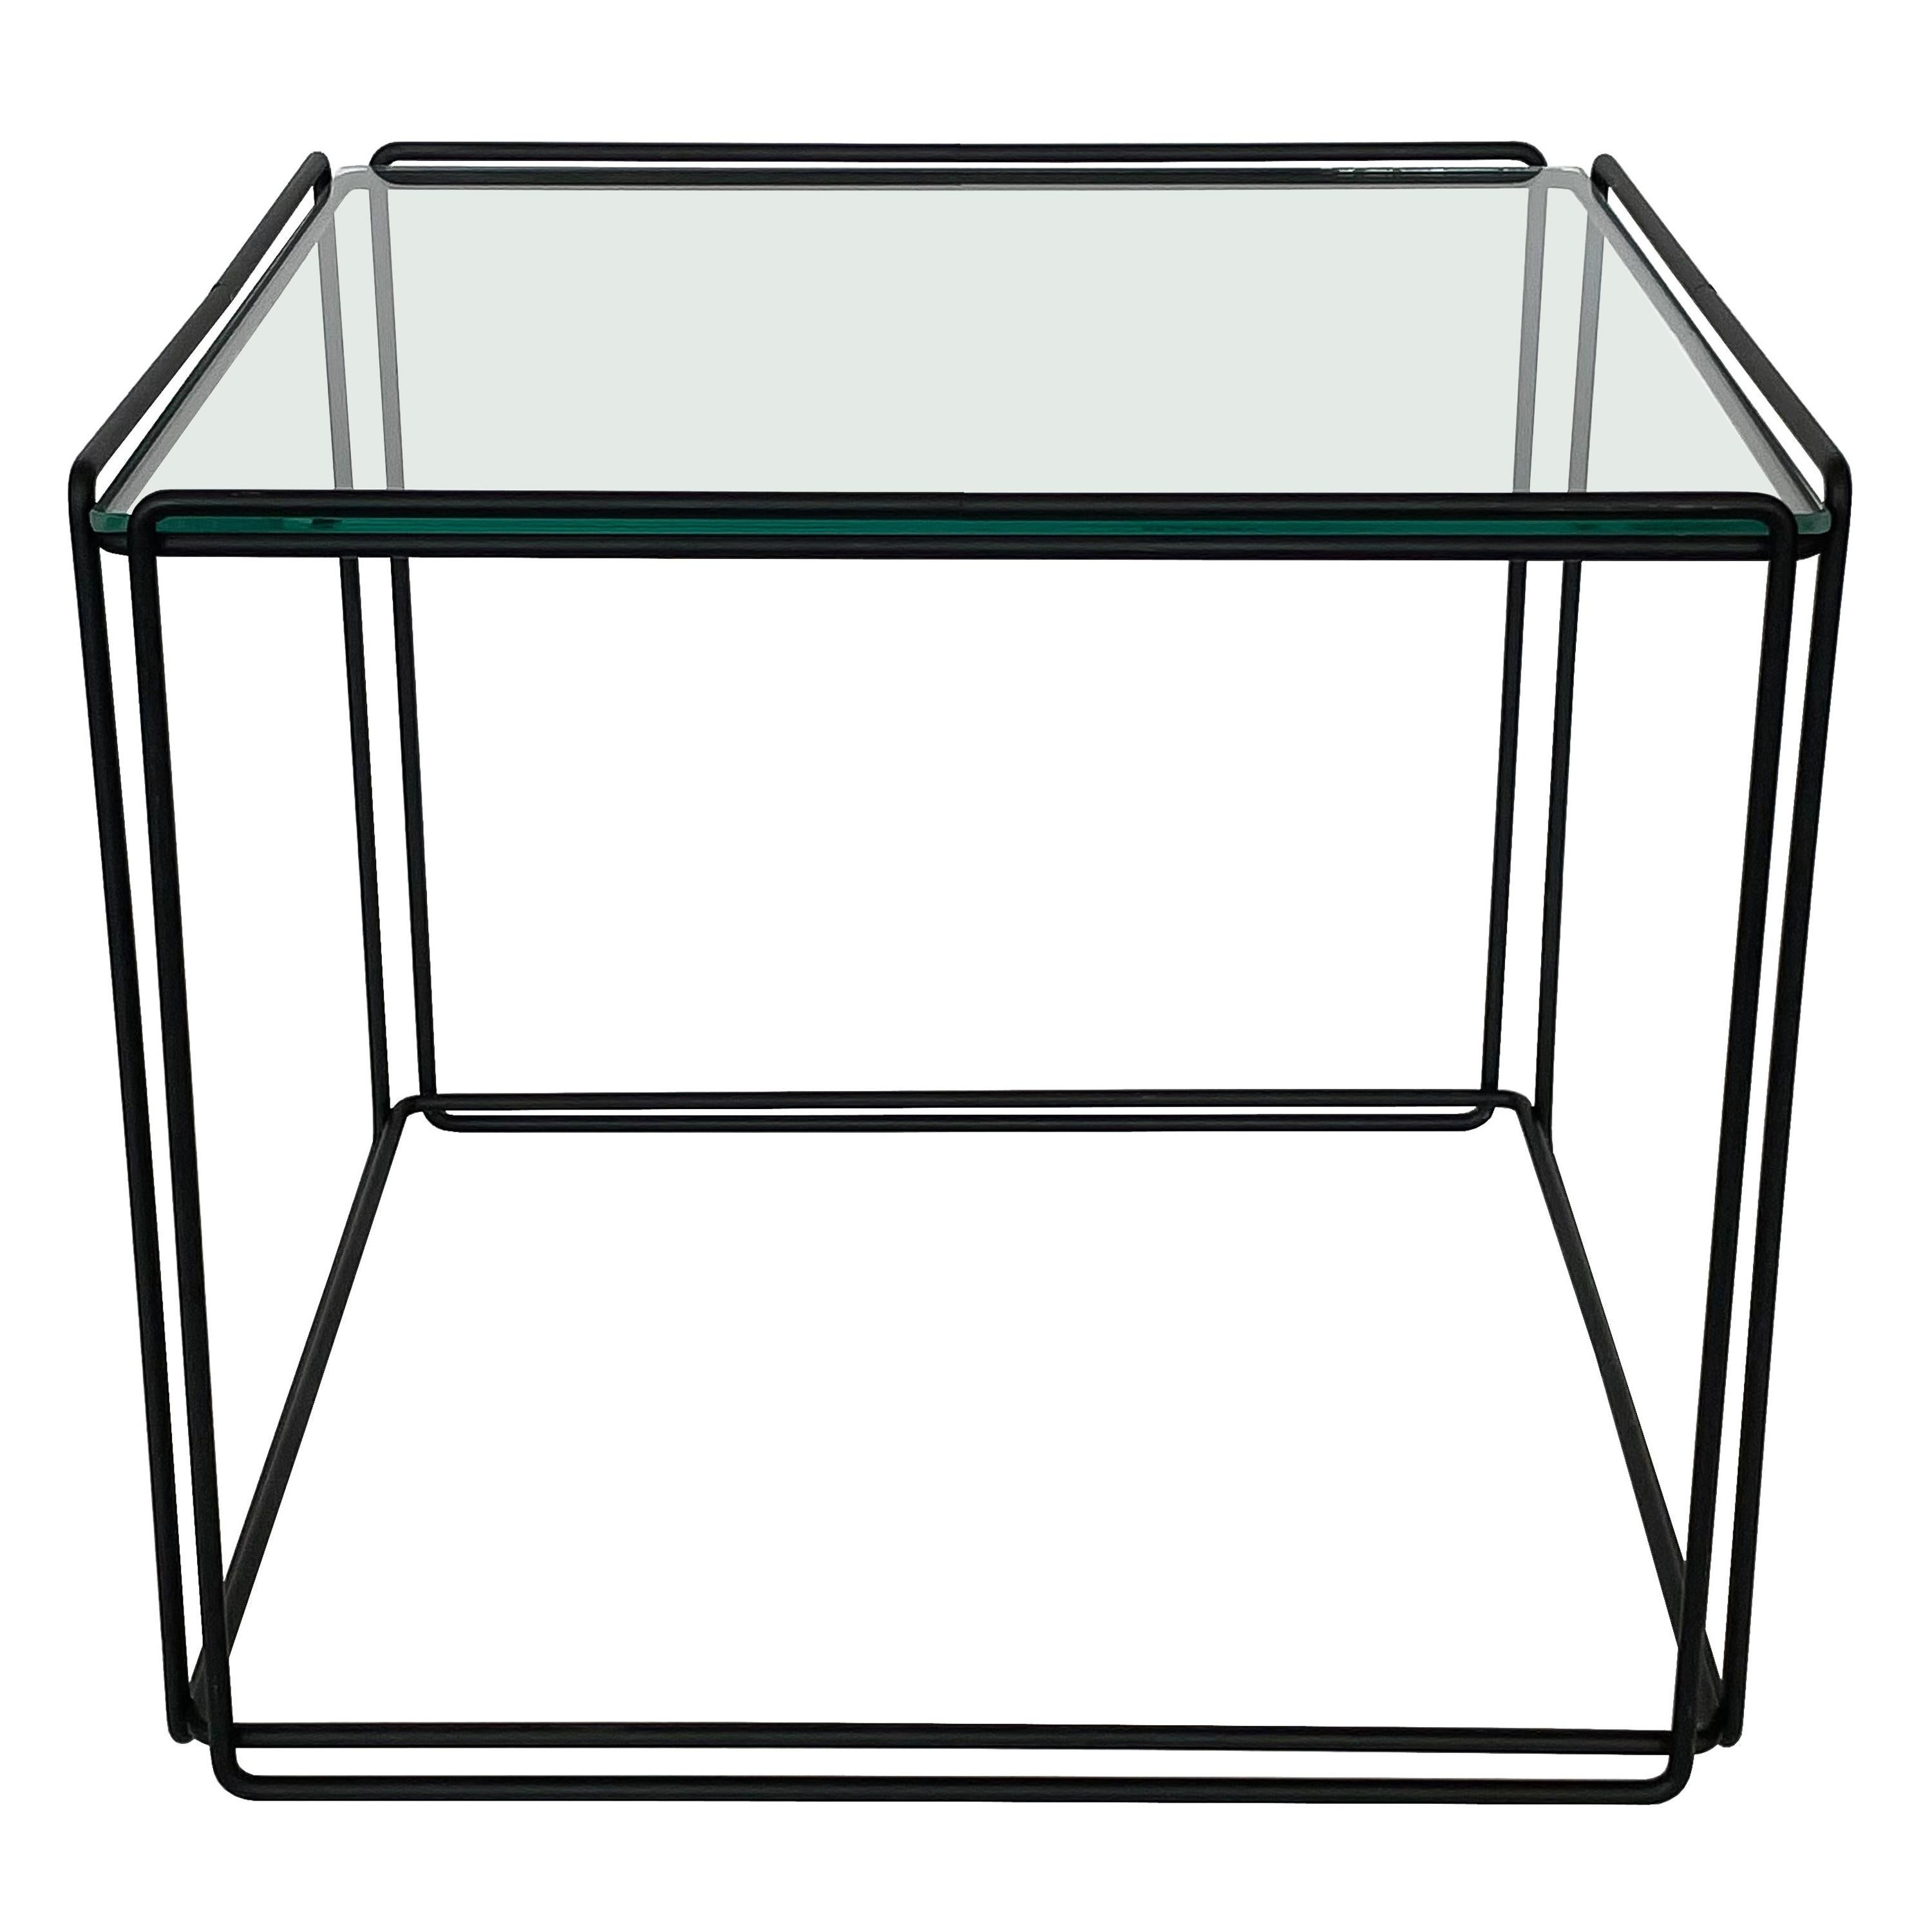 Max Sauze Isoceles Metal and Glass Cube Side Table